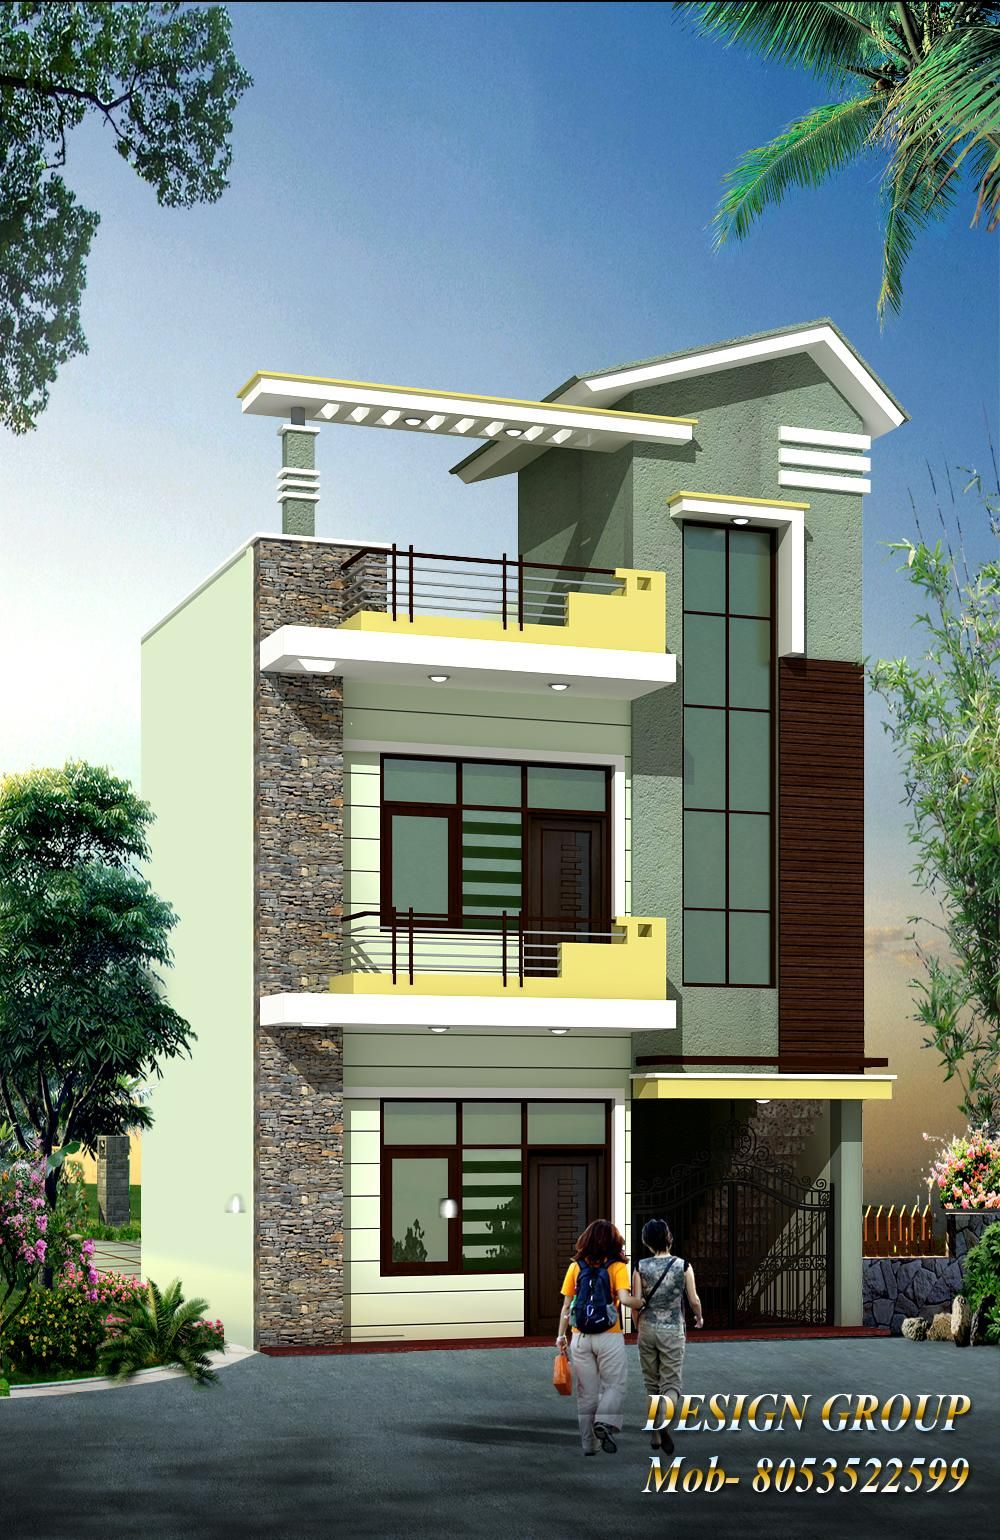 Wonderful Front Elevation Home Design Plans, Duplex House Design, House Front Design,  Apartment Design